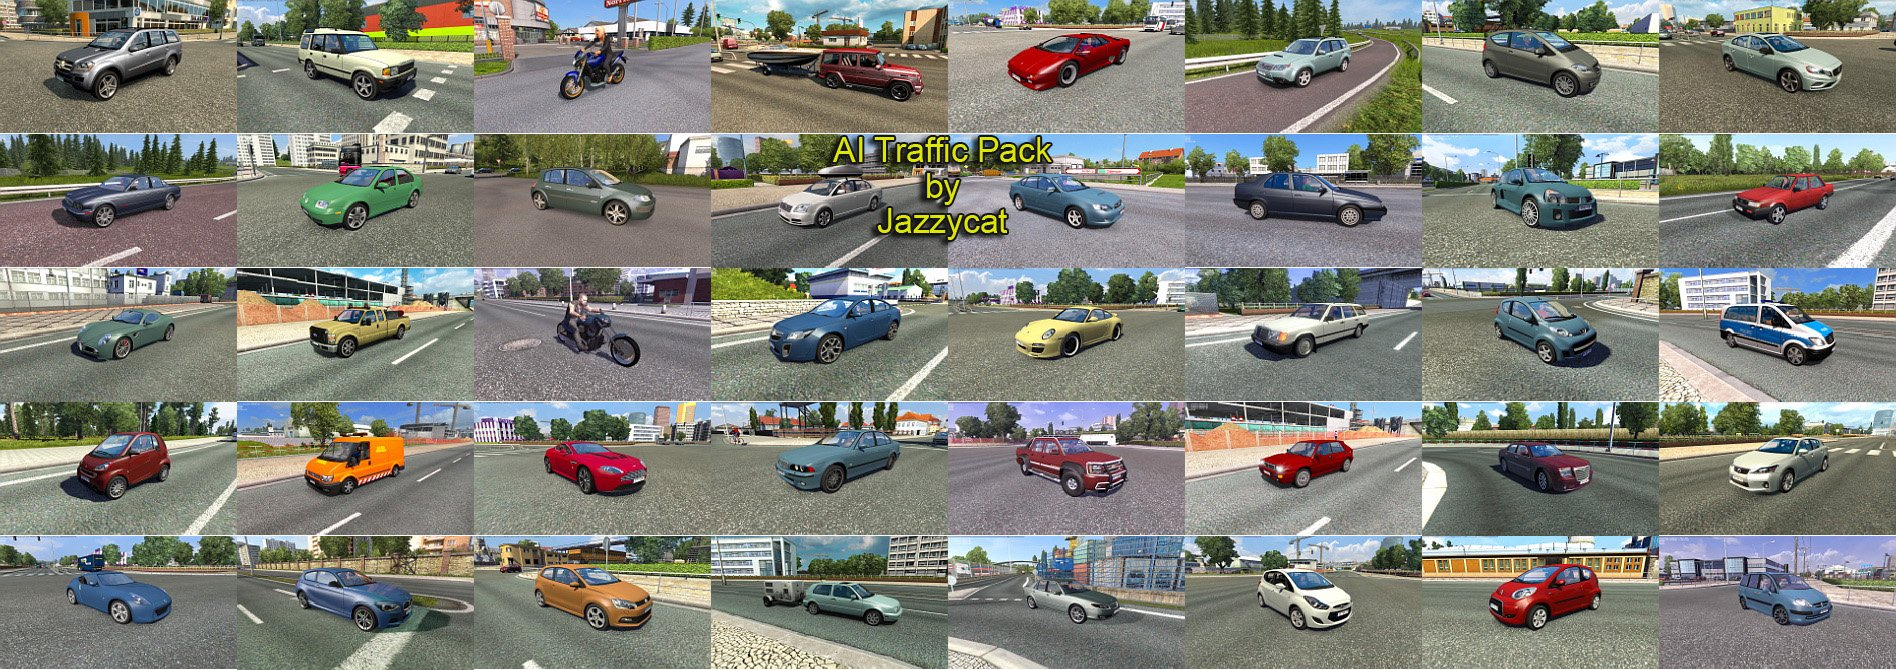 AI Traffic Pack v3.9 by Jazzycat